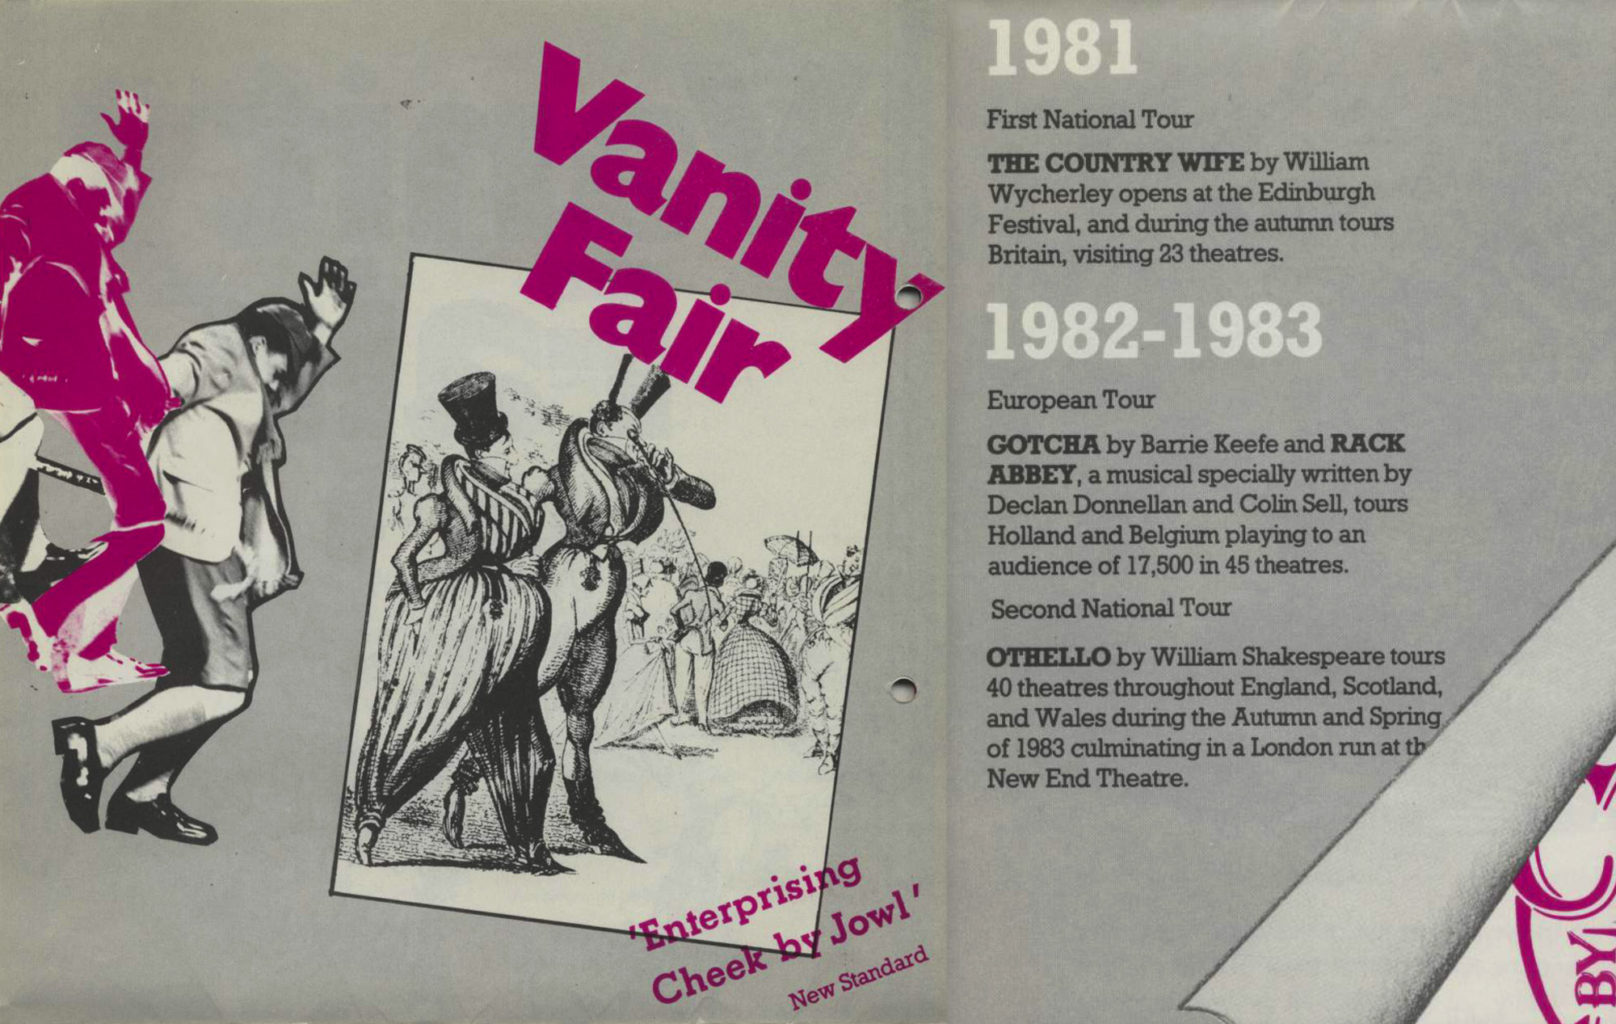 Programme for Cheek by Jowl's Vanity Fair (version 1)